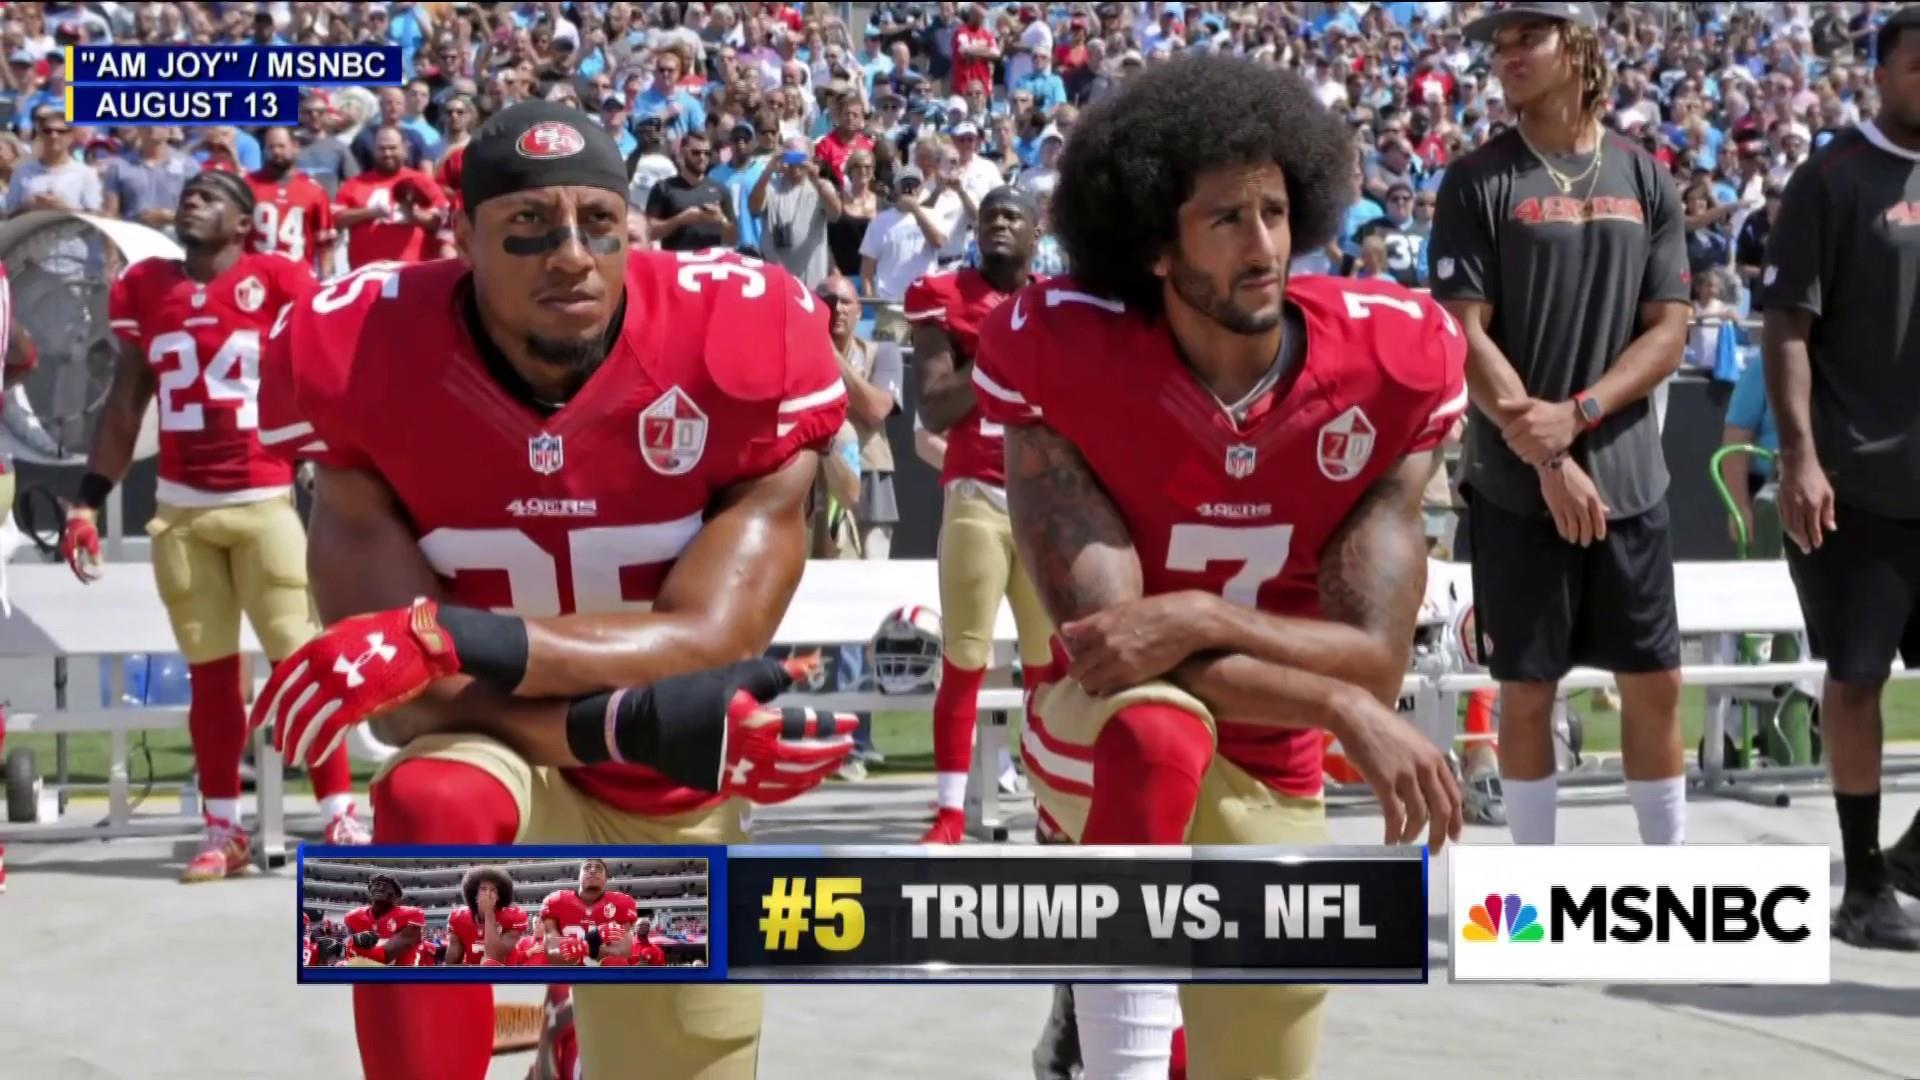 #BestofJoy: President Trump takes on the NFL